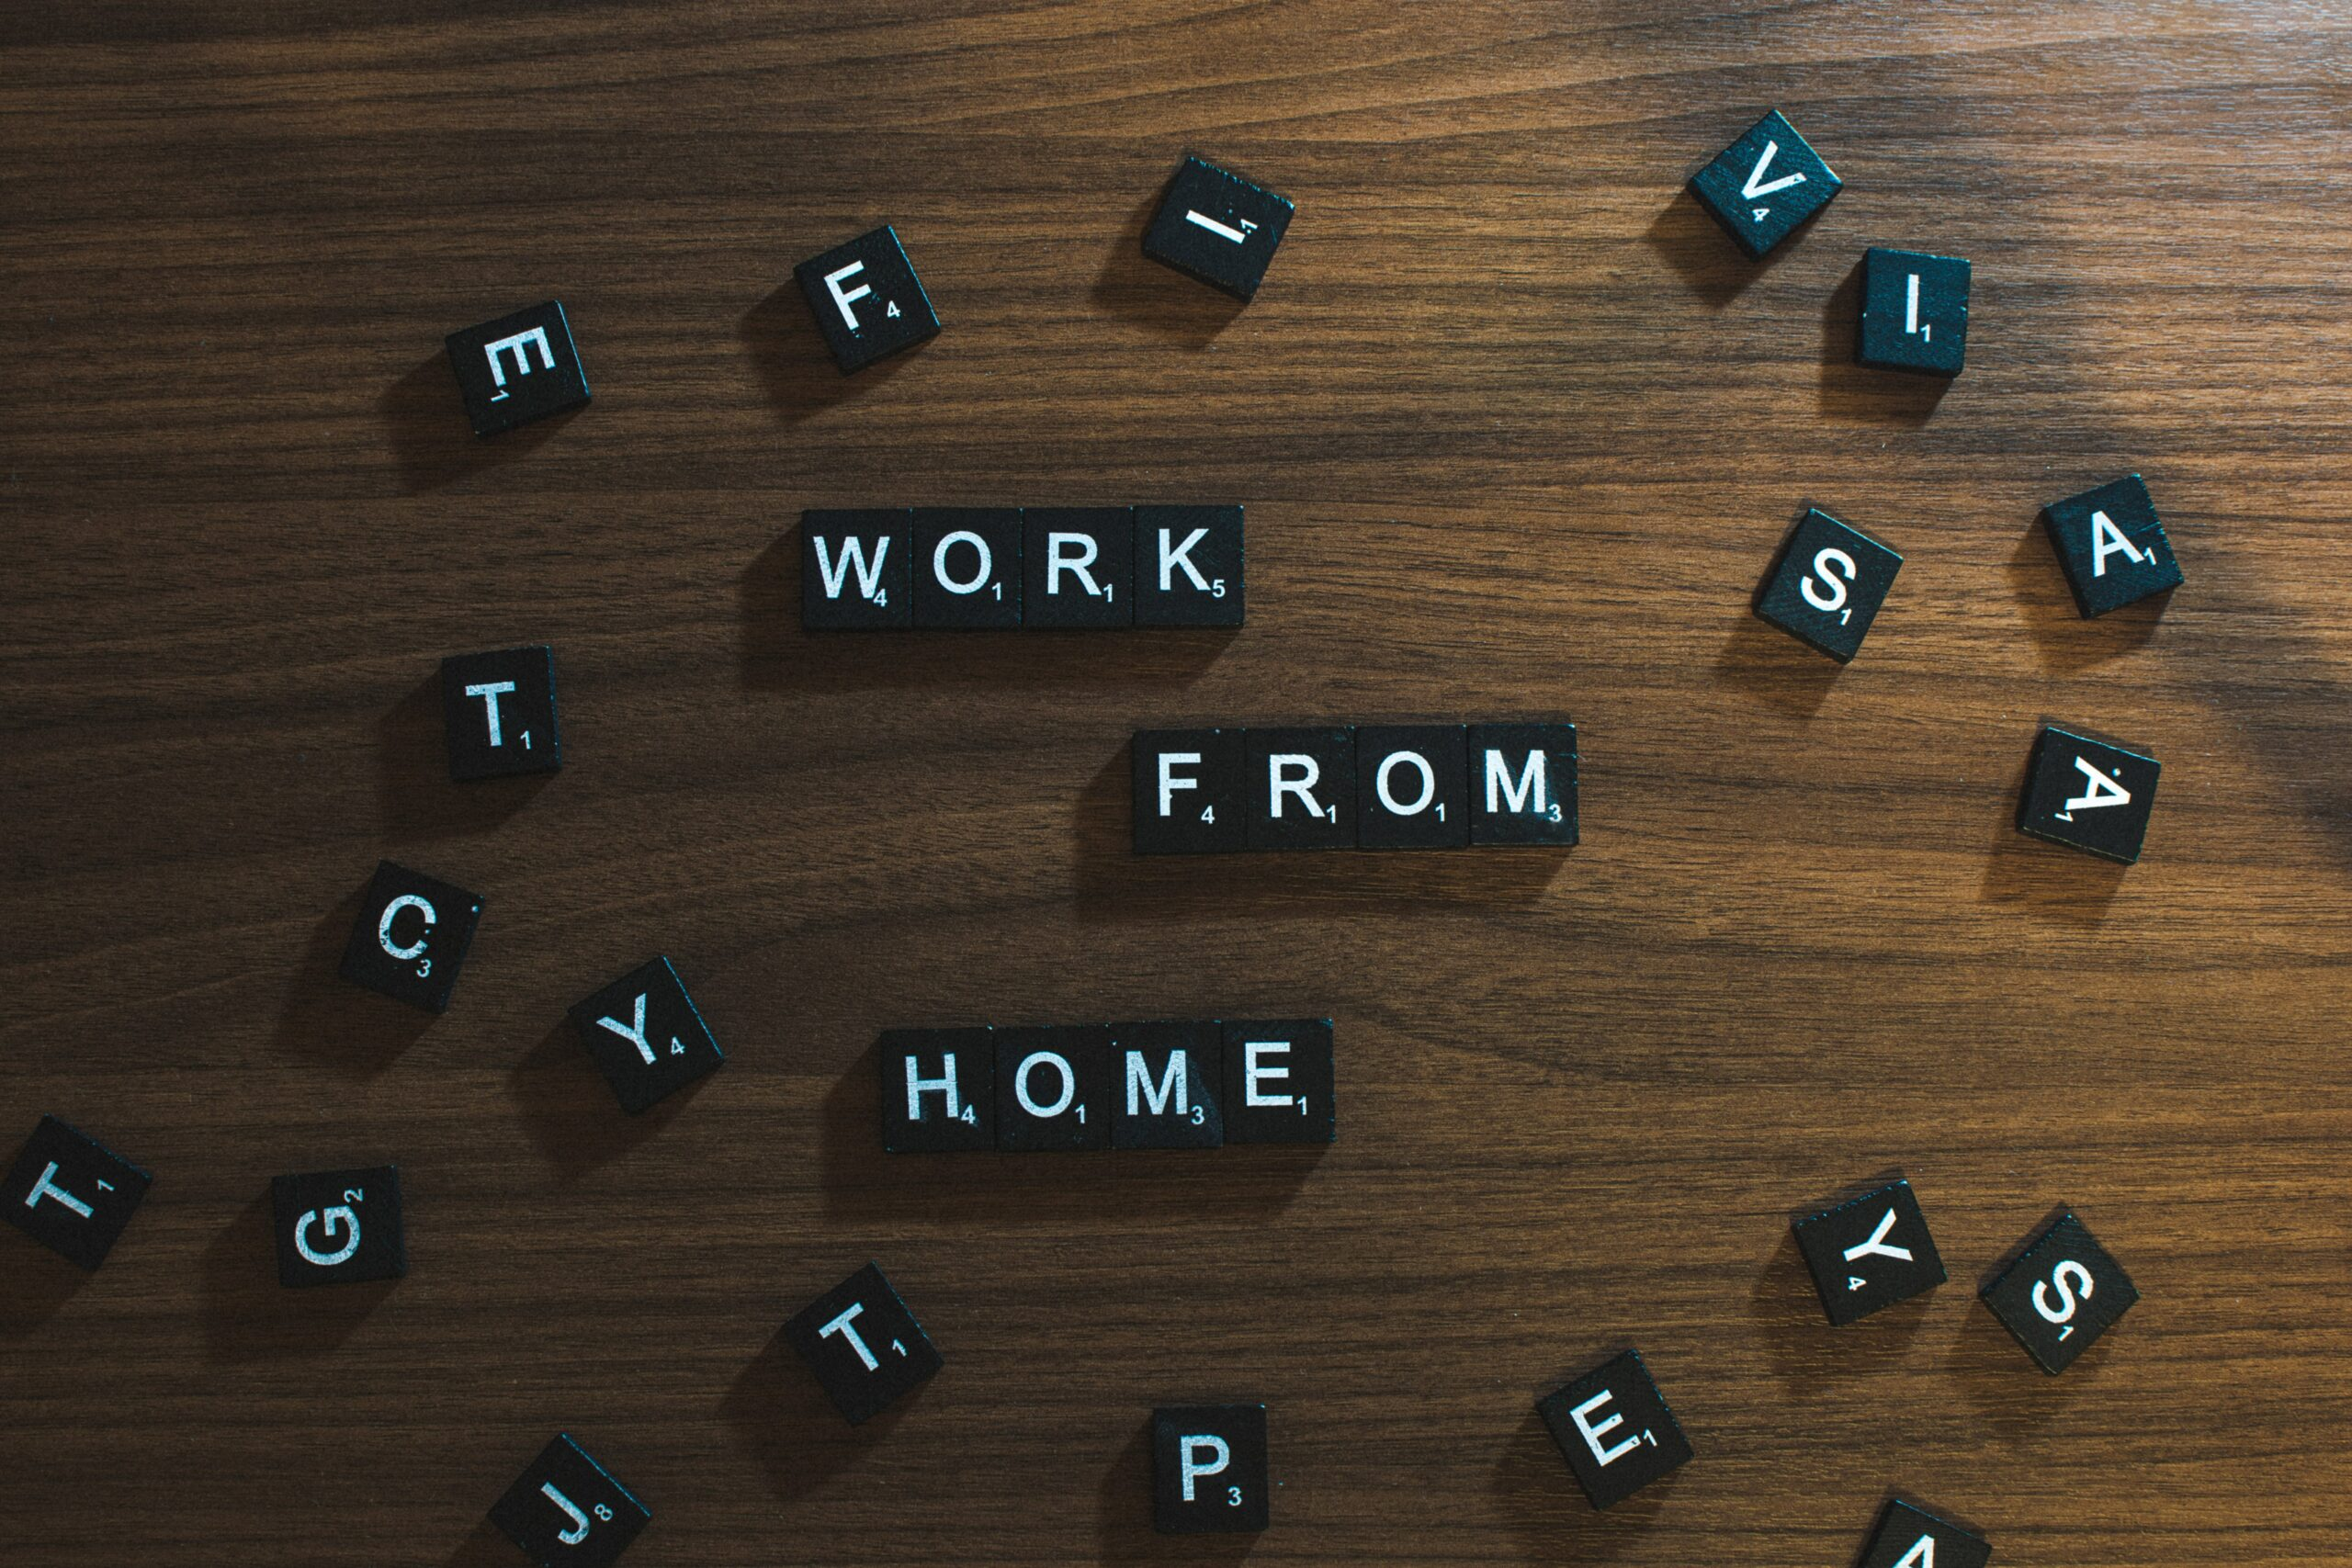 Black tiles with white letters spelling out Work From Home on a brown background